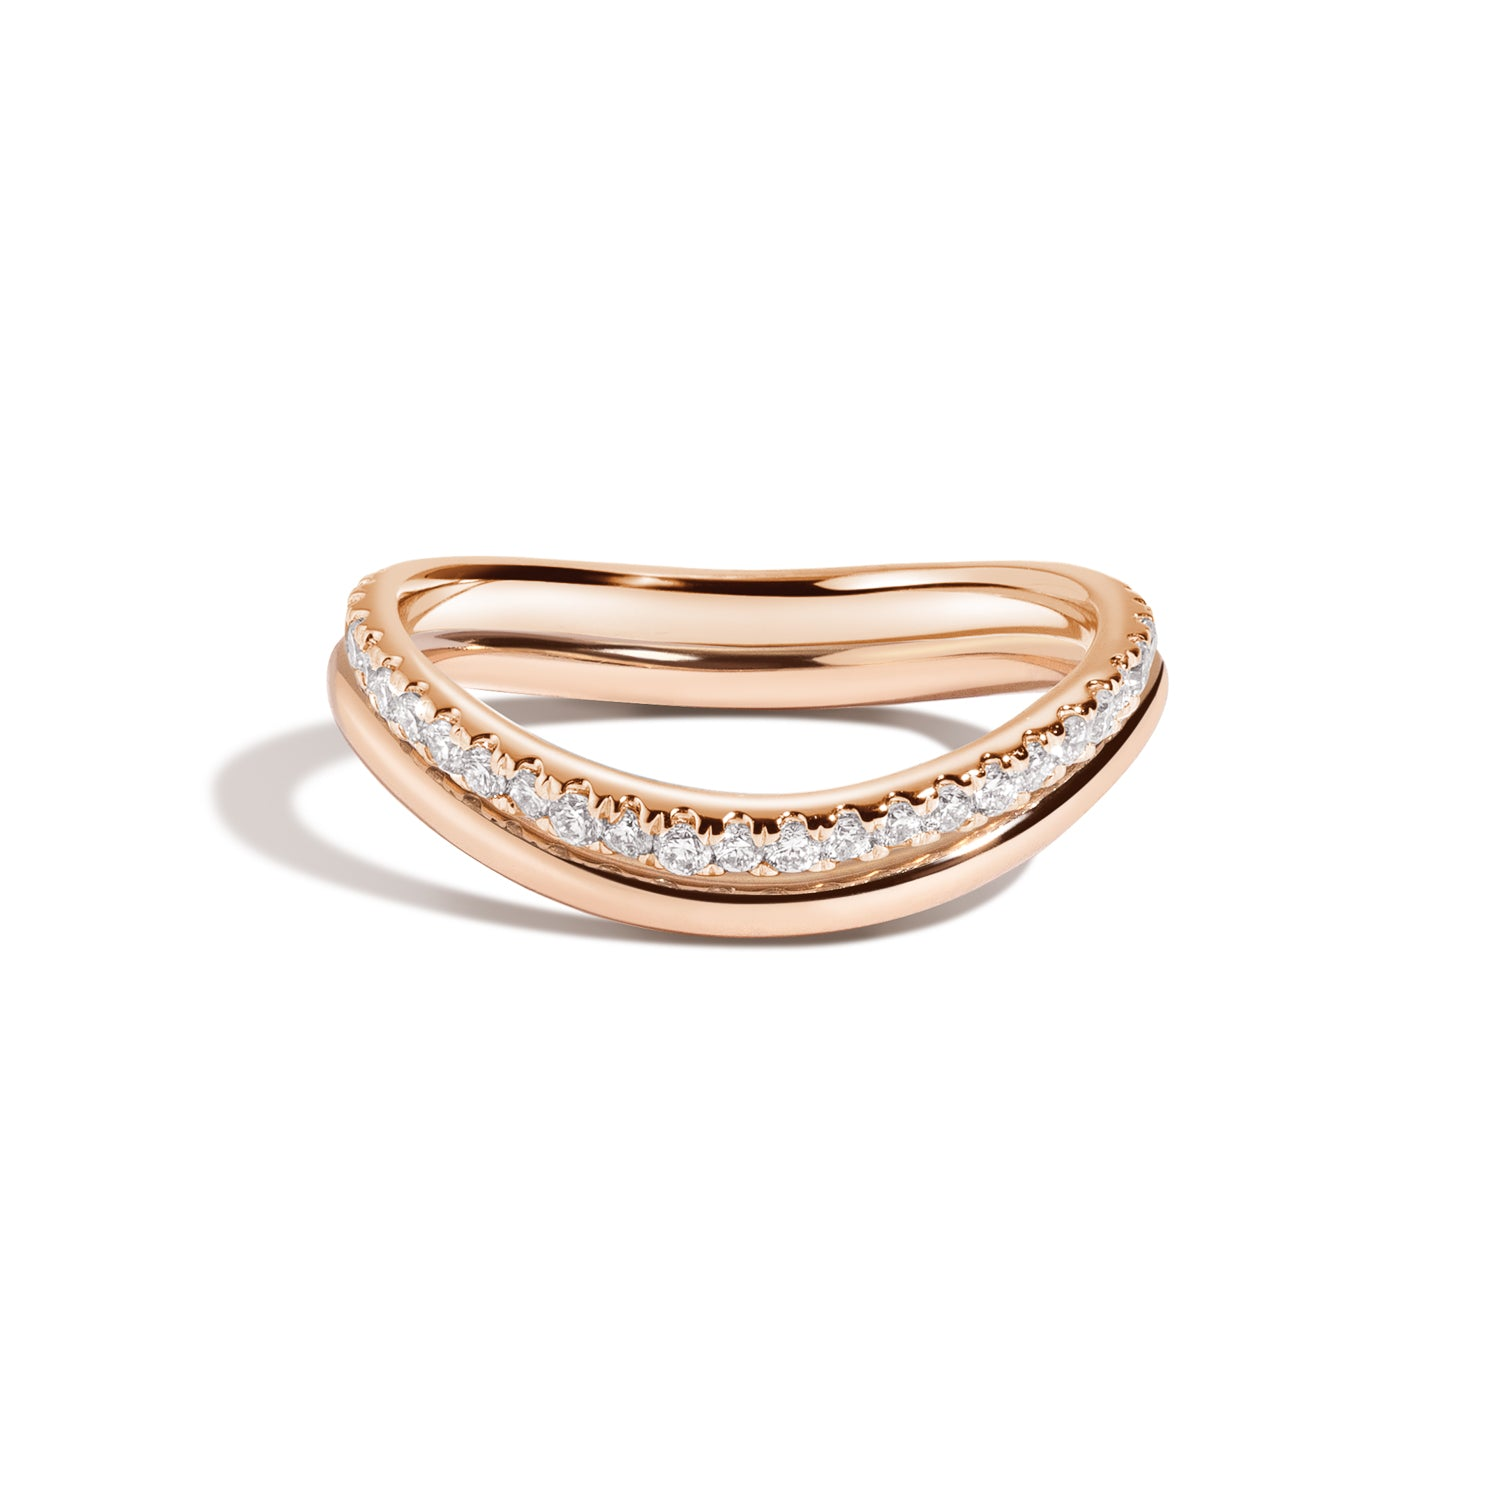 Bossa Nova Band & Diamond Ring Set